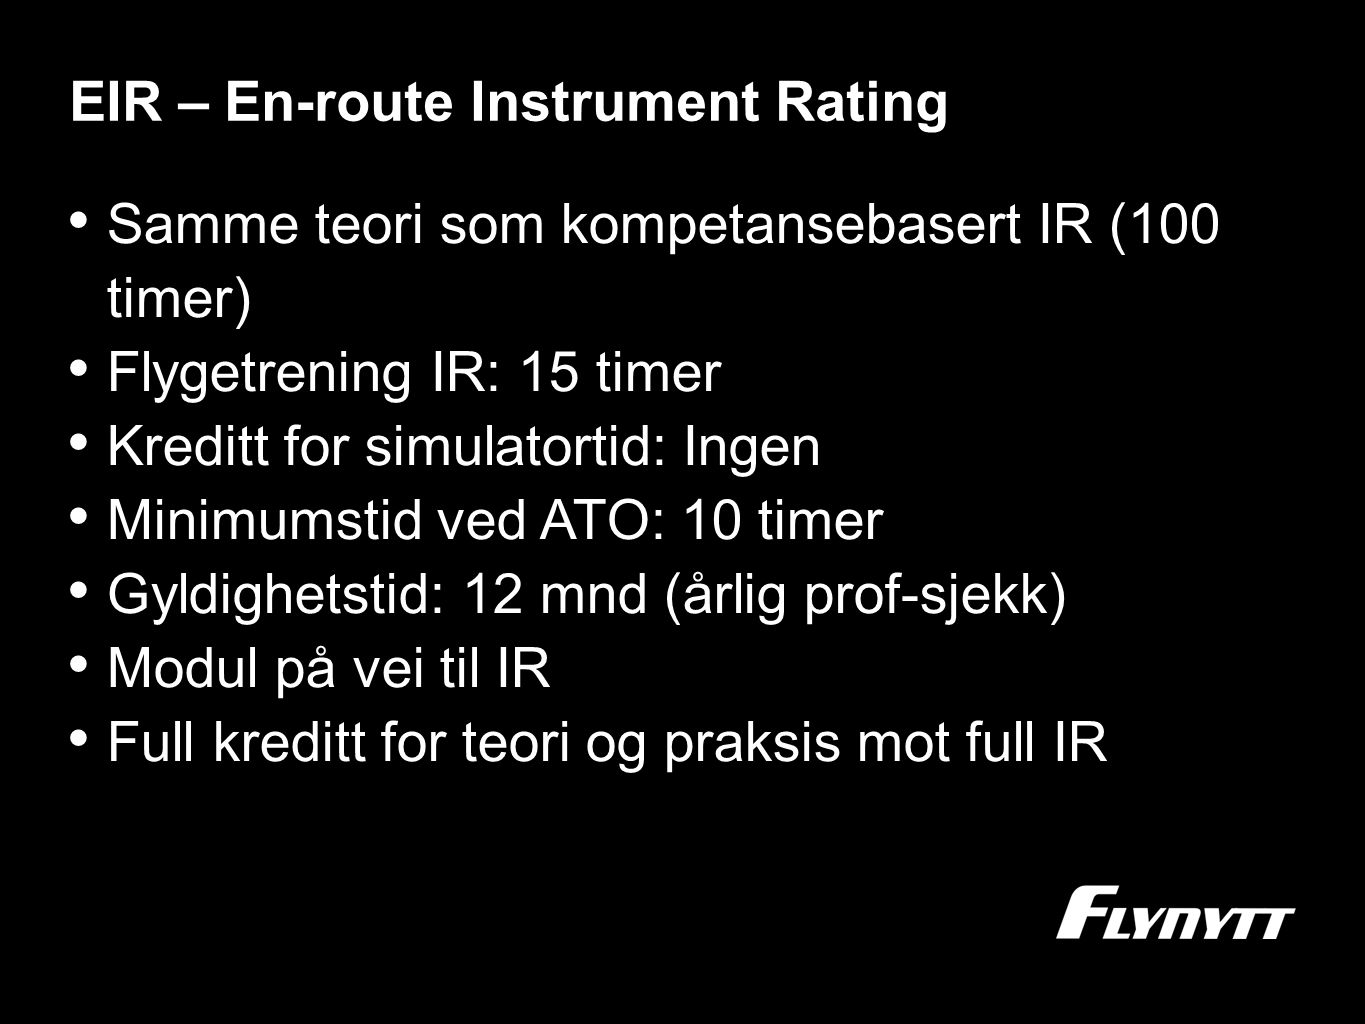 EIR – En-route Instrument Rating